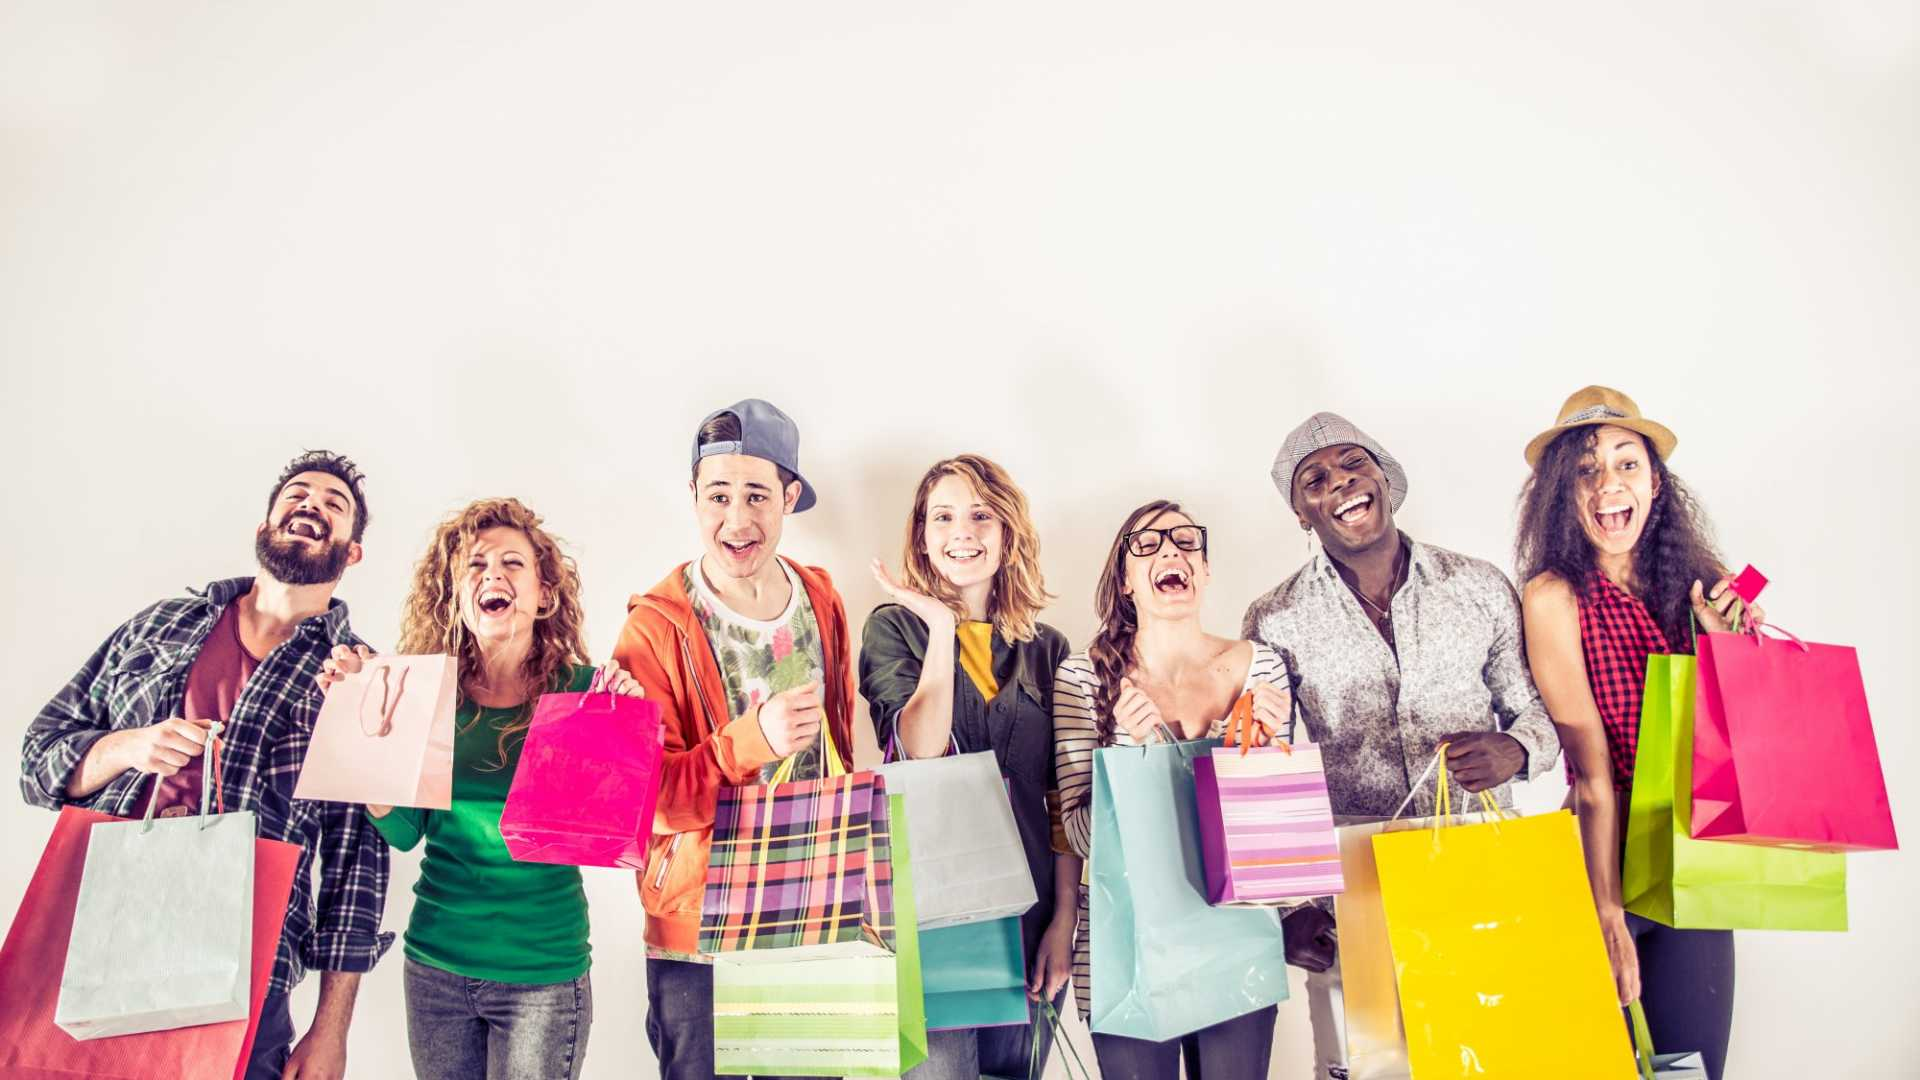 4 Ways to Create Happier, More Engaged Customers